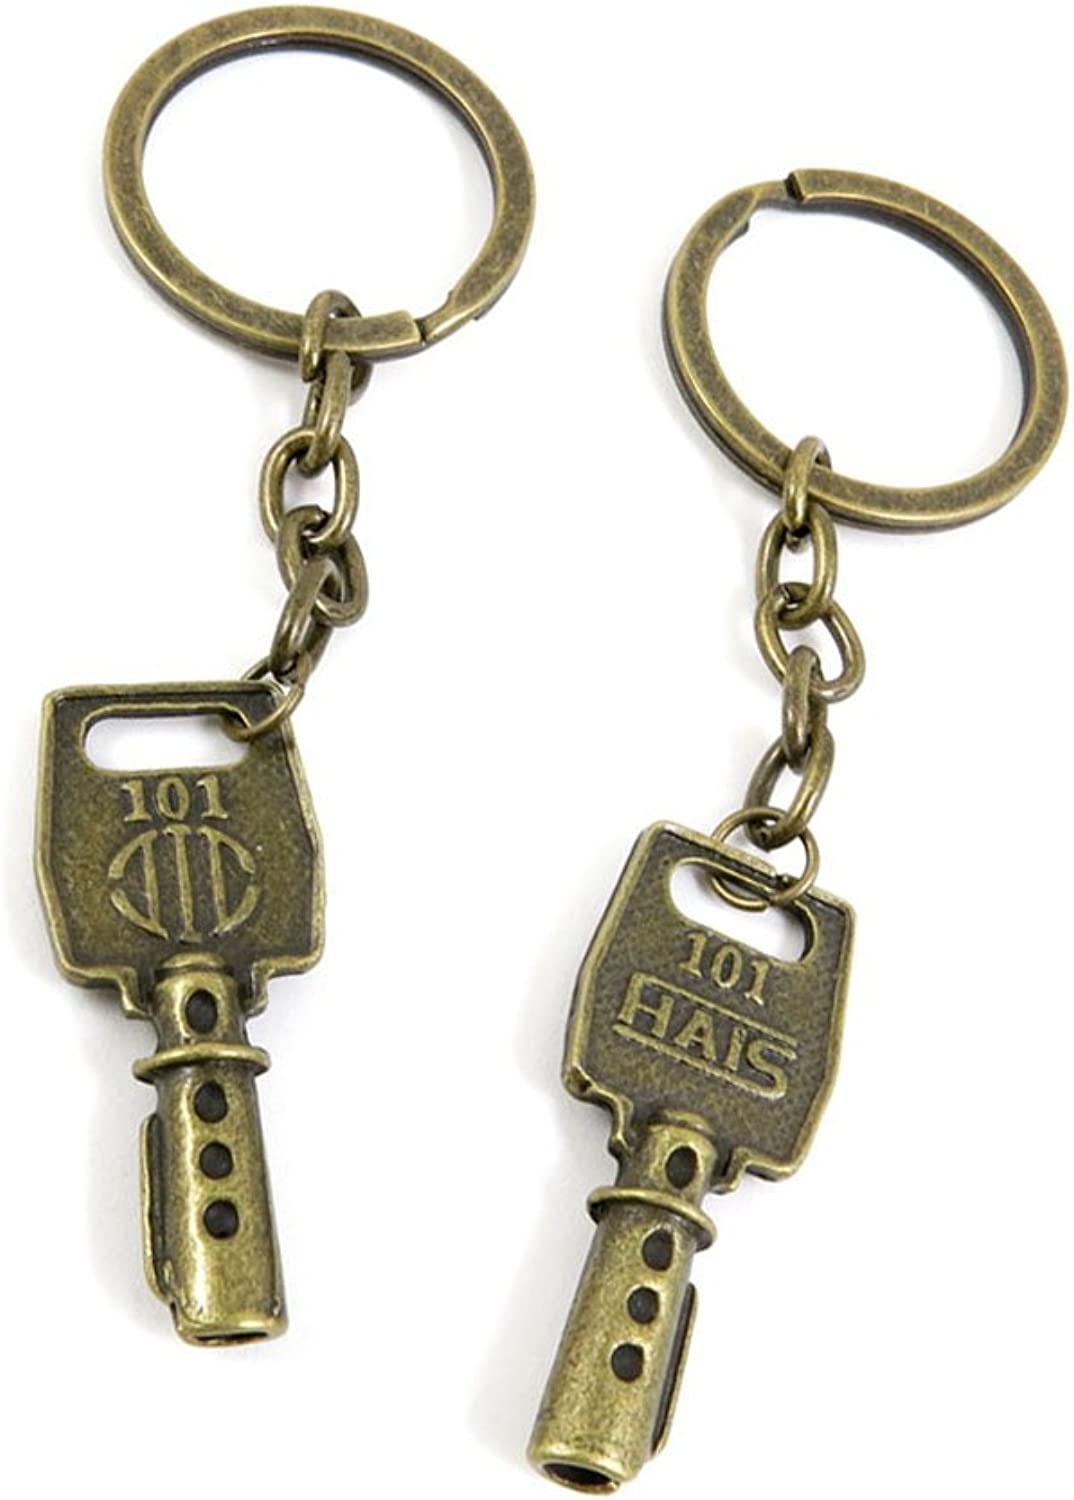 100 PCS Keyrings Keychains Key Ring Chains Tags Jewelry Findings Clasps Buckles Supplies D3LM4 Fake Key